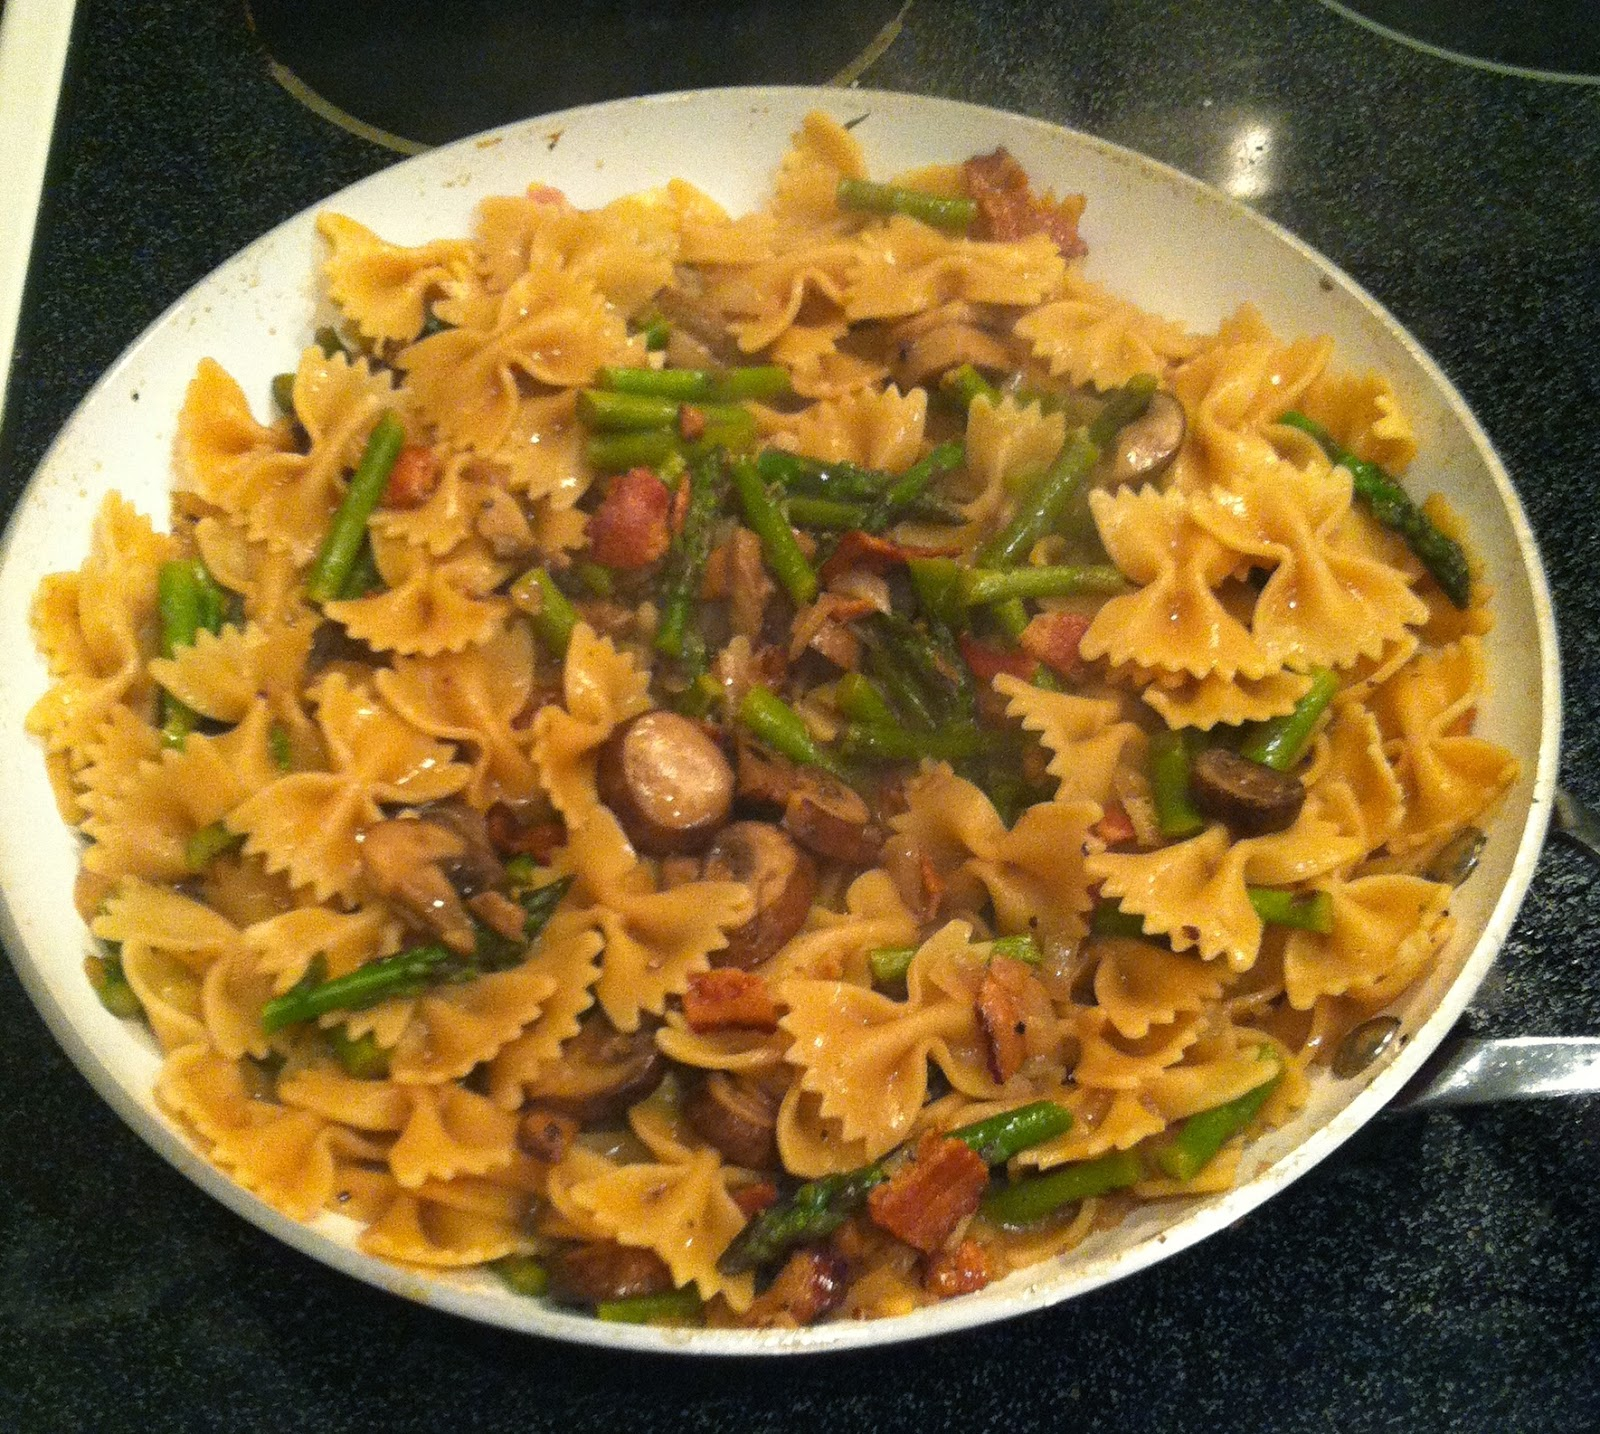 Pasta with bacon, mushrooms and asparagus in Marsala sauce